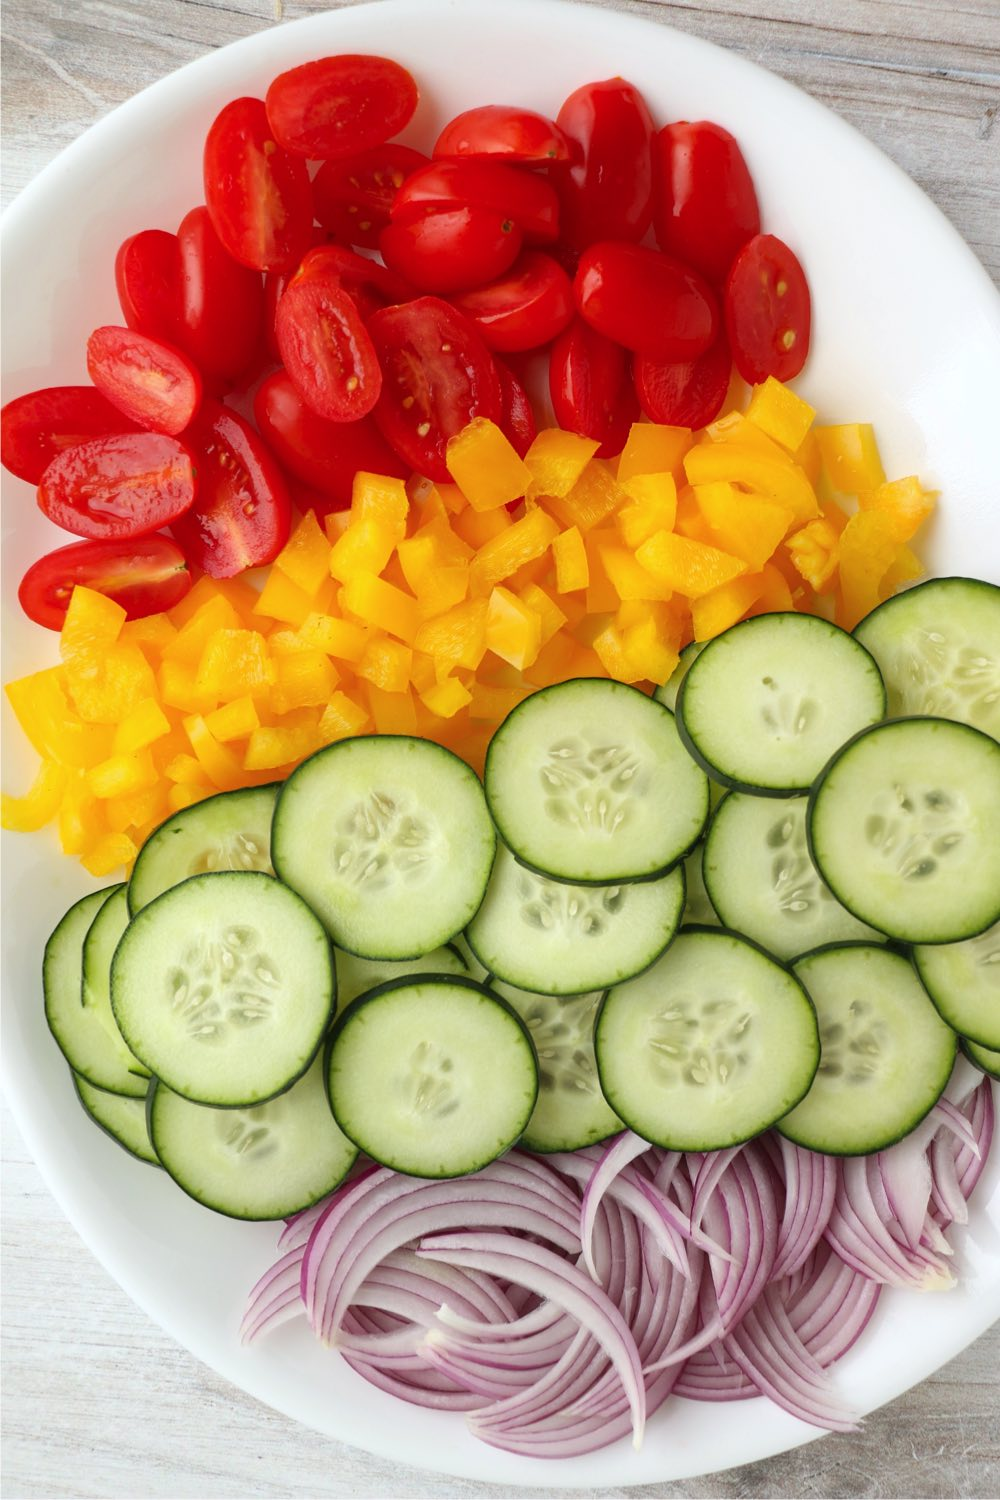 chopped up vegetables for a salad